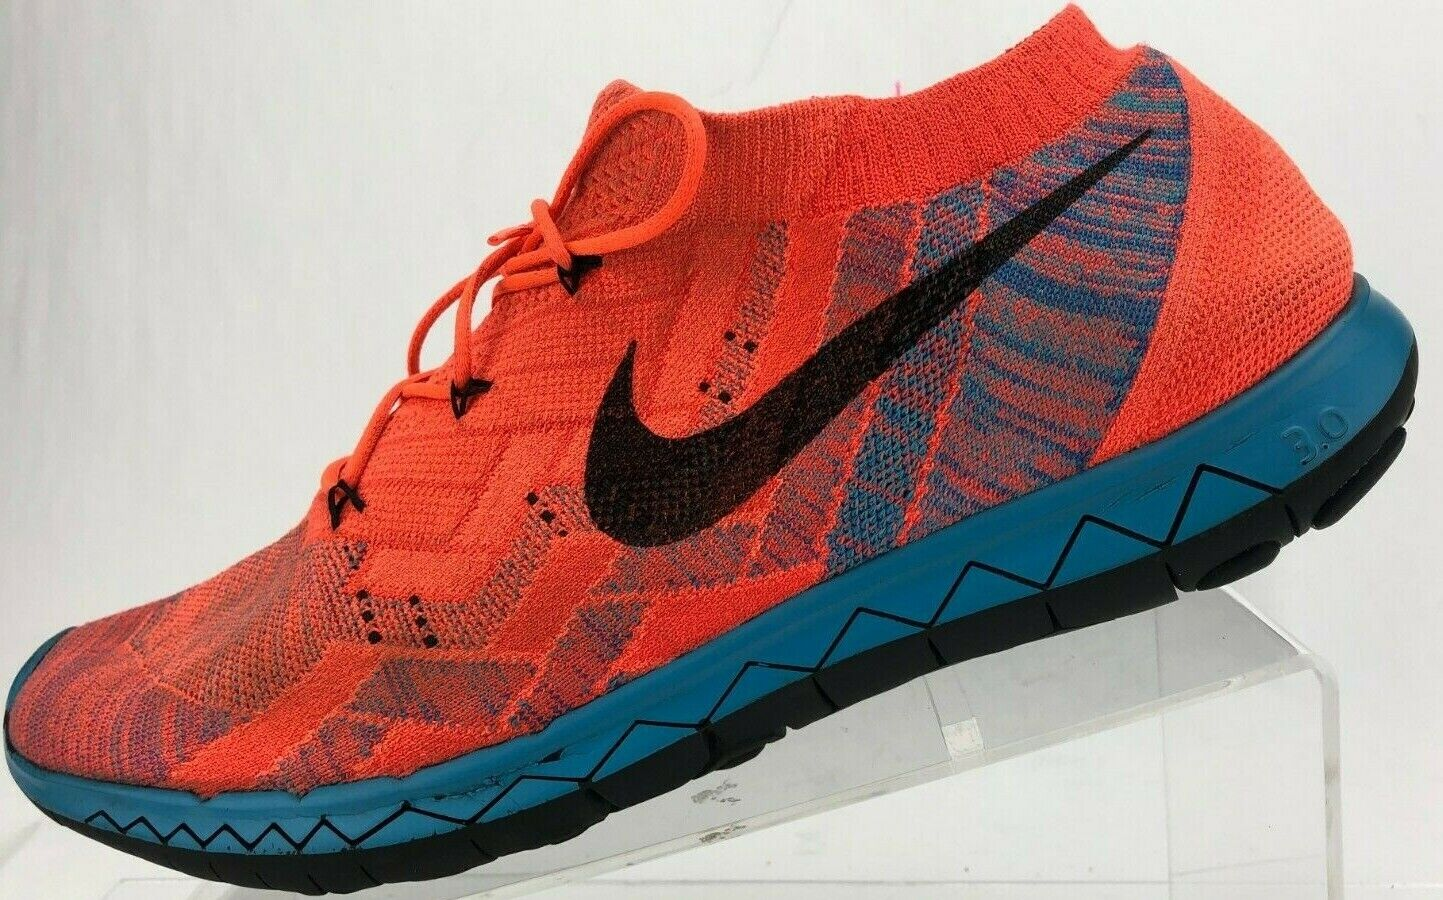 Nike 3.0 Flyknit Running shoes orange bluee Training Athletic Sneakers Mens 12.5